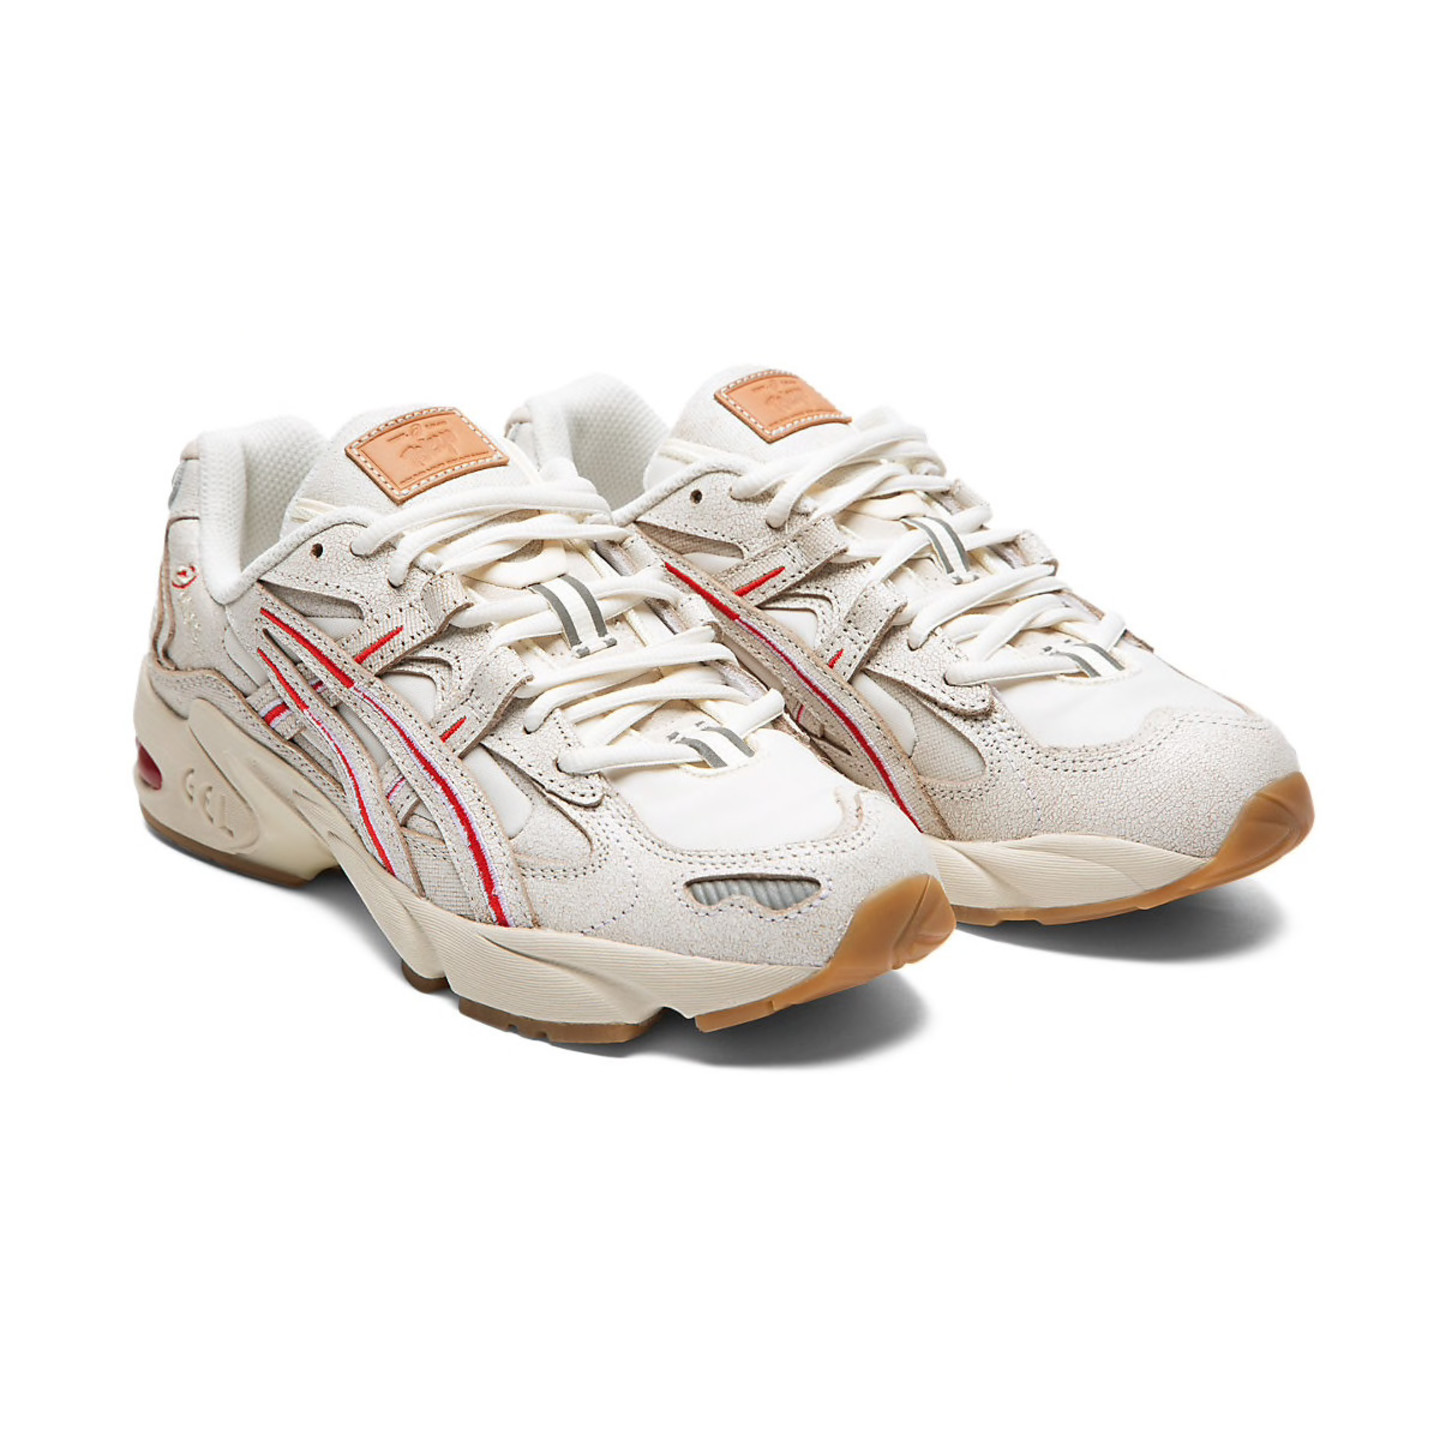 Asics Gel-Kayano 5 OG Retro W 'Tokyo' Off White / Olympic Red 1022A292-100